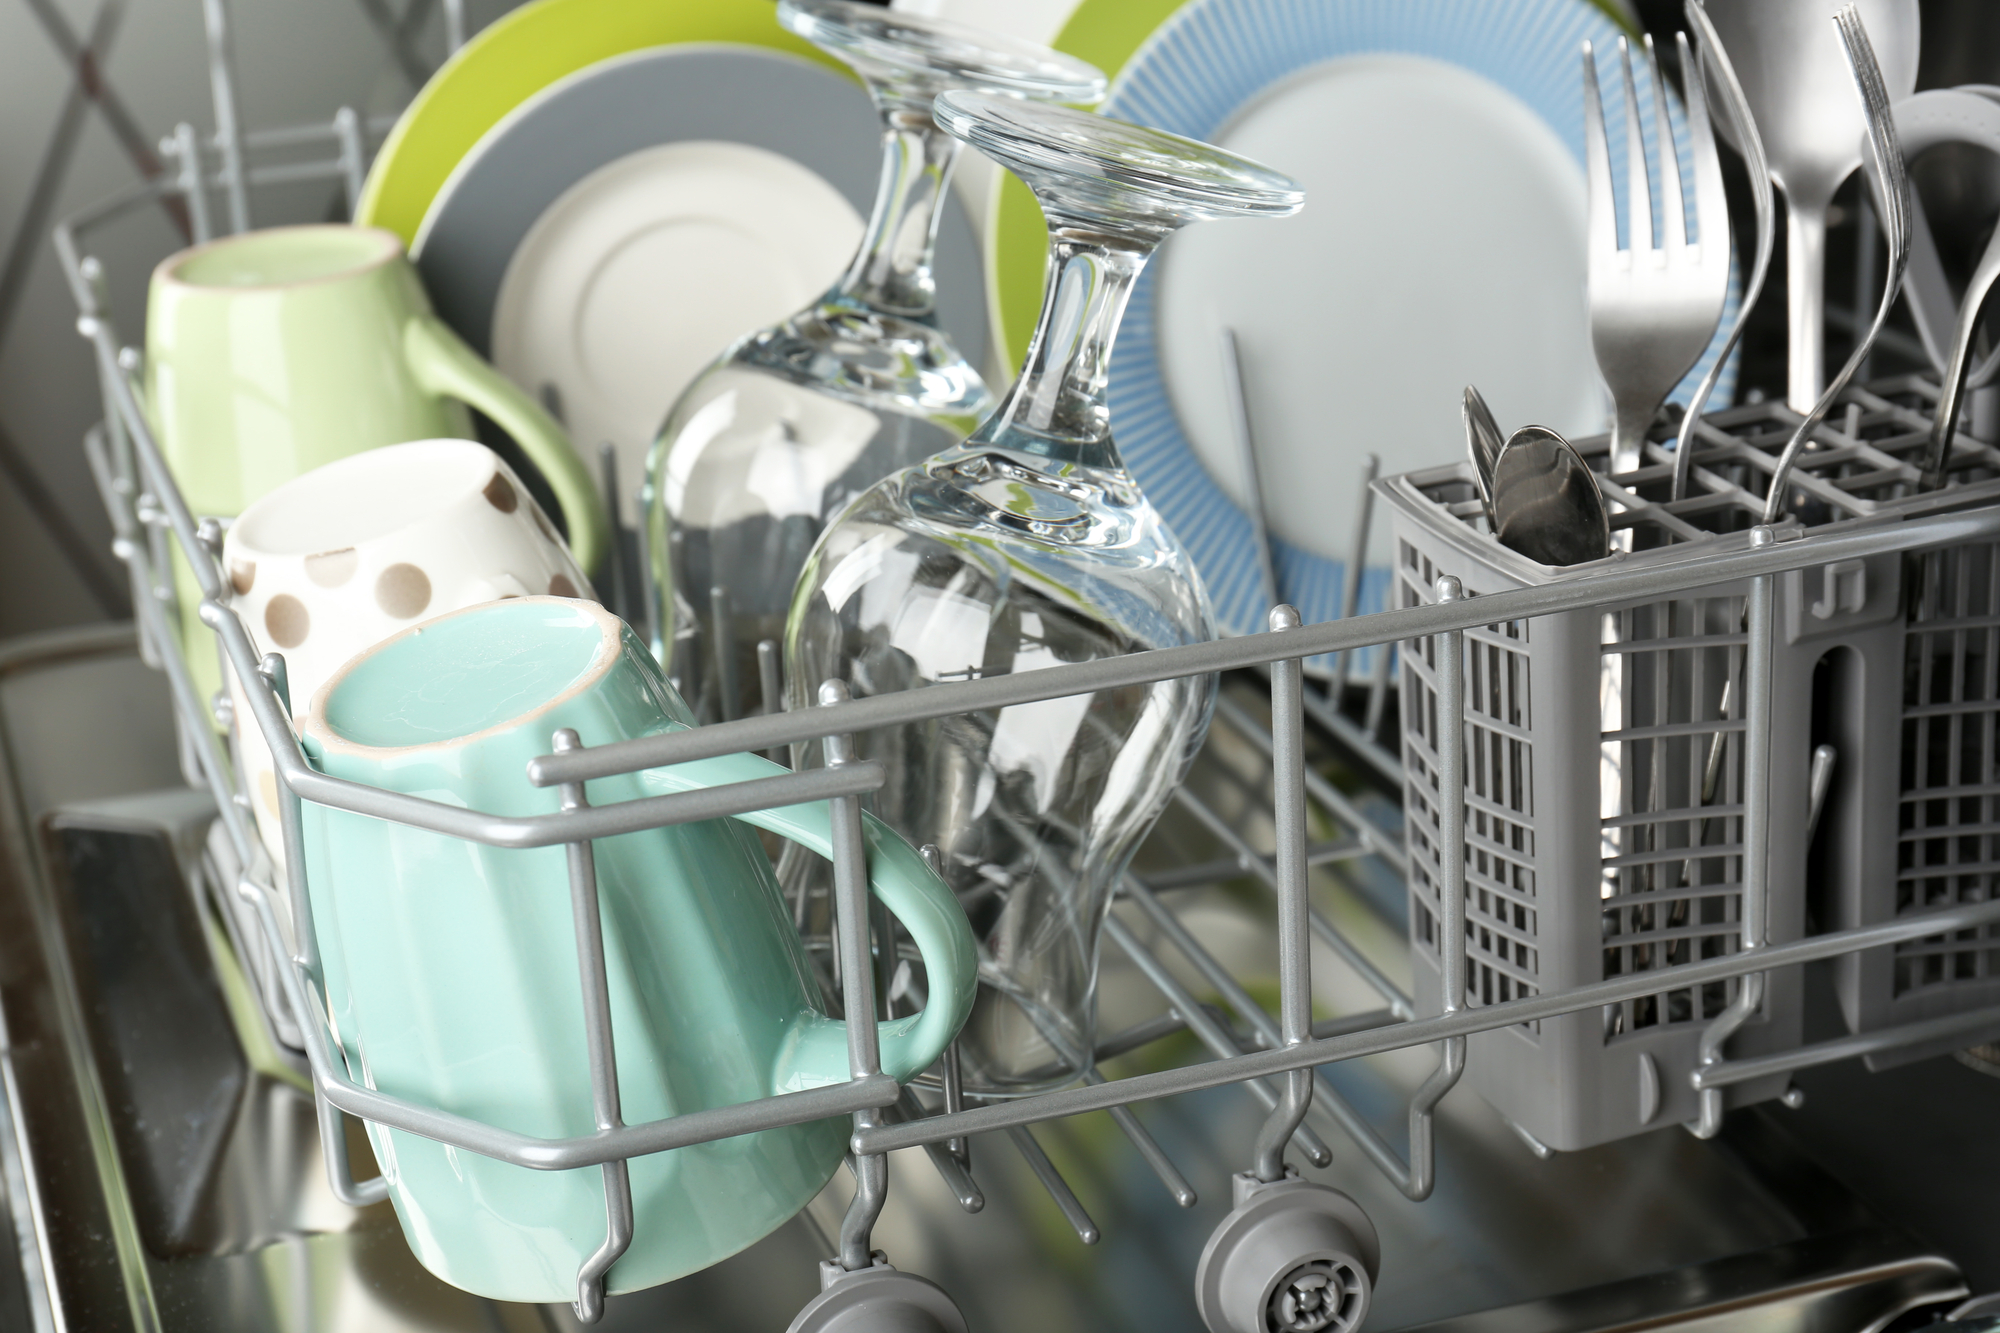 loading-dishwasher